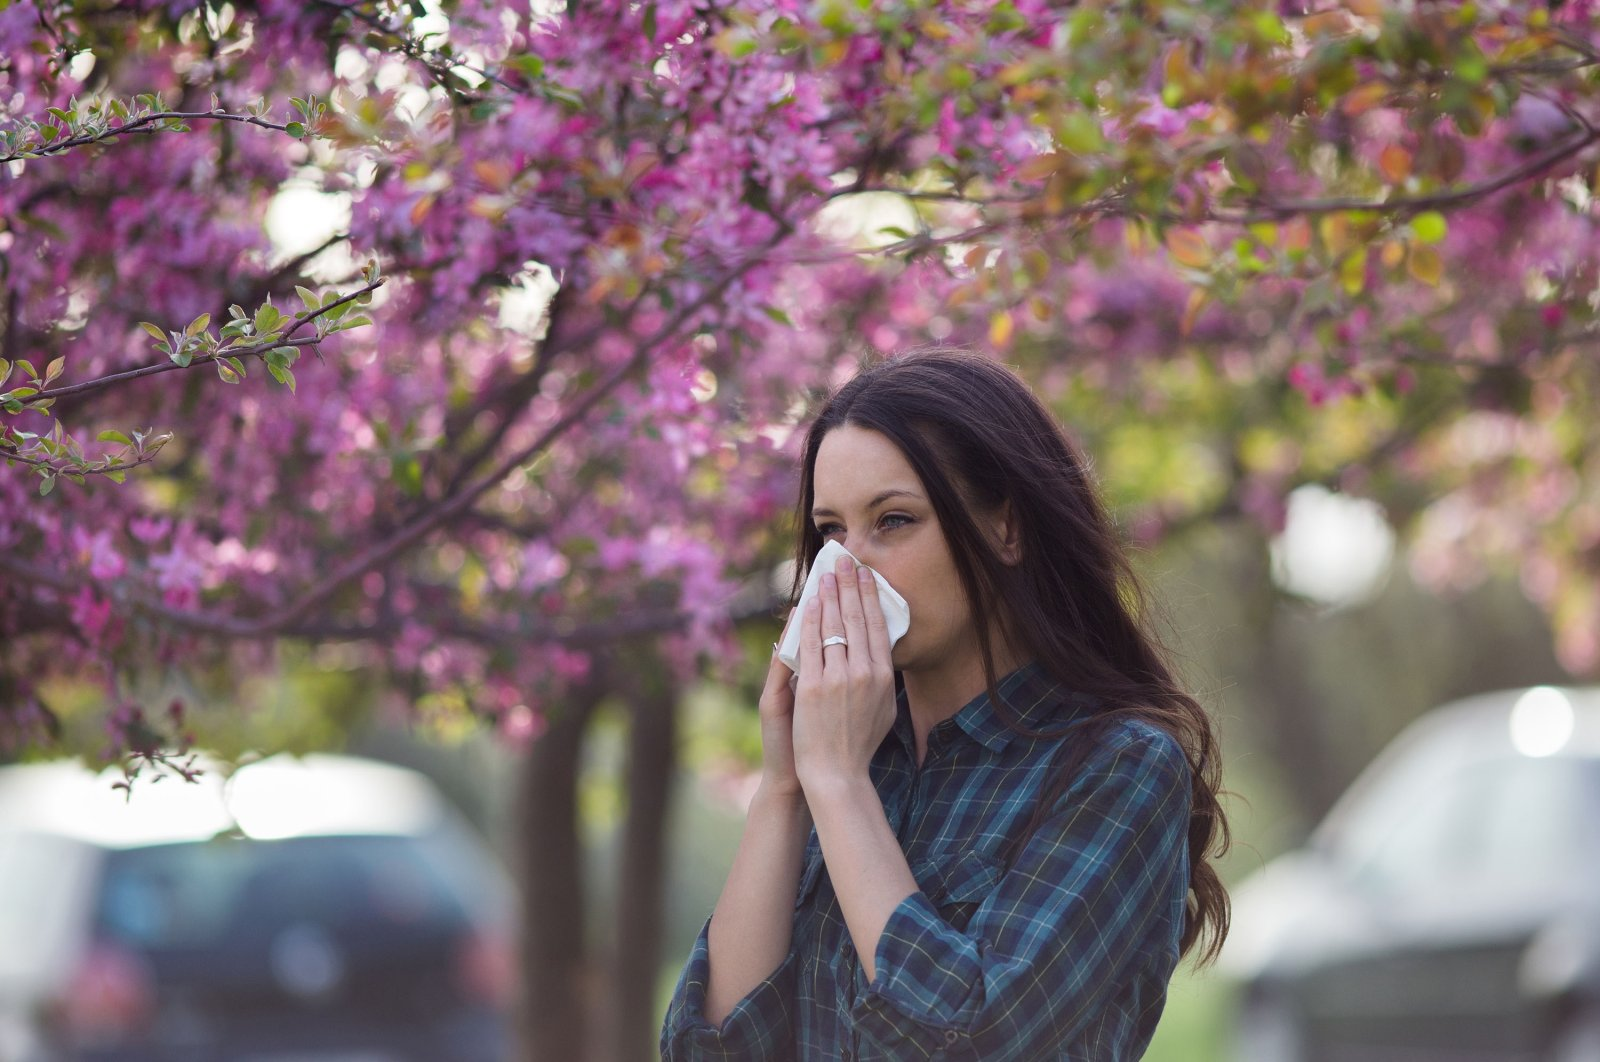 Pollen from trees and grasses can trigger allergy symptoms for people sensitive to pollen grains. (Shutterstock Photo)